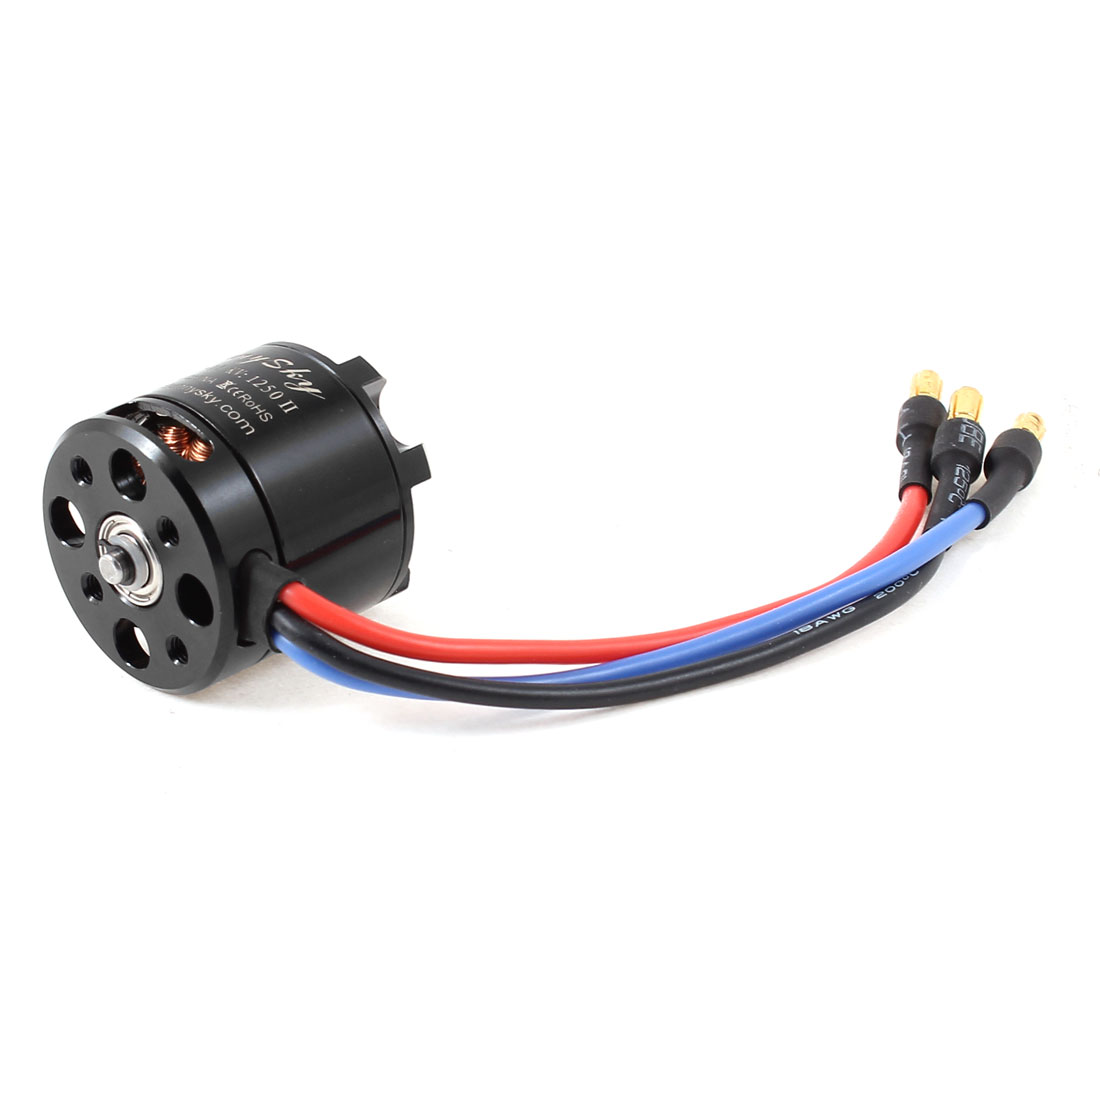 X2212-10 1250KV Rotary Speed Brushless Outrunner Motor for RC Aircraft